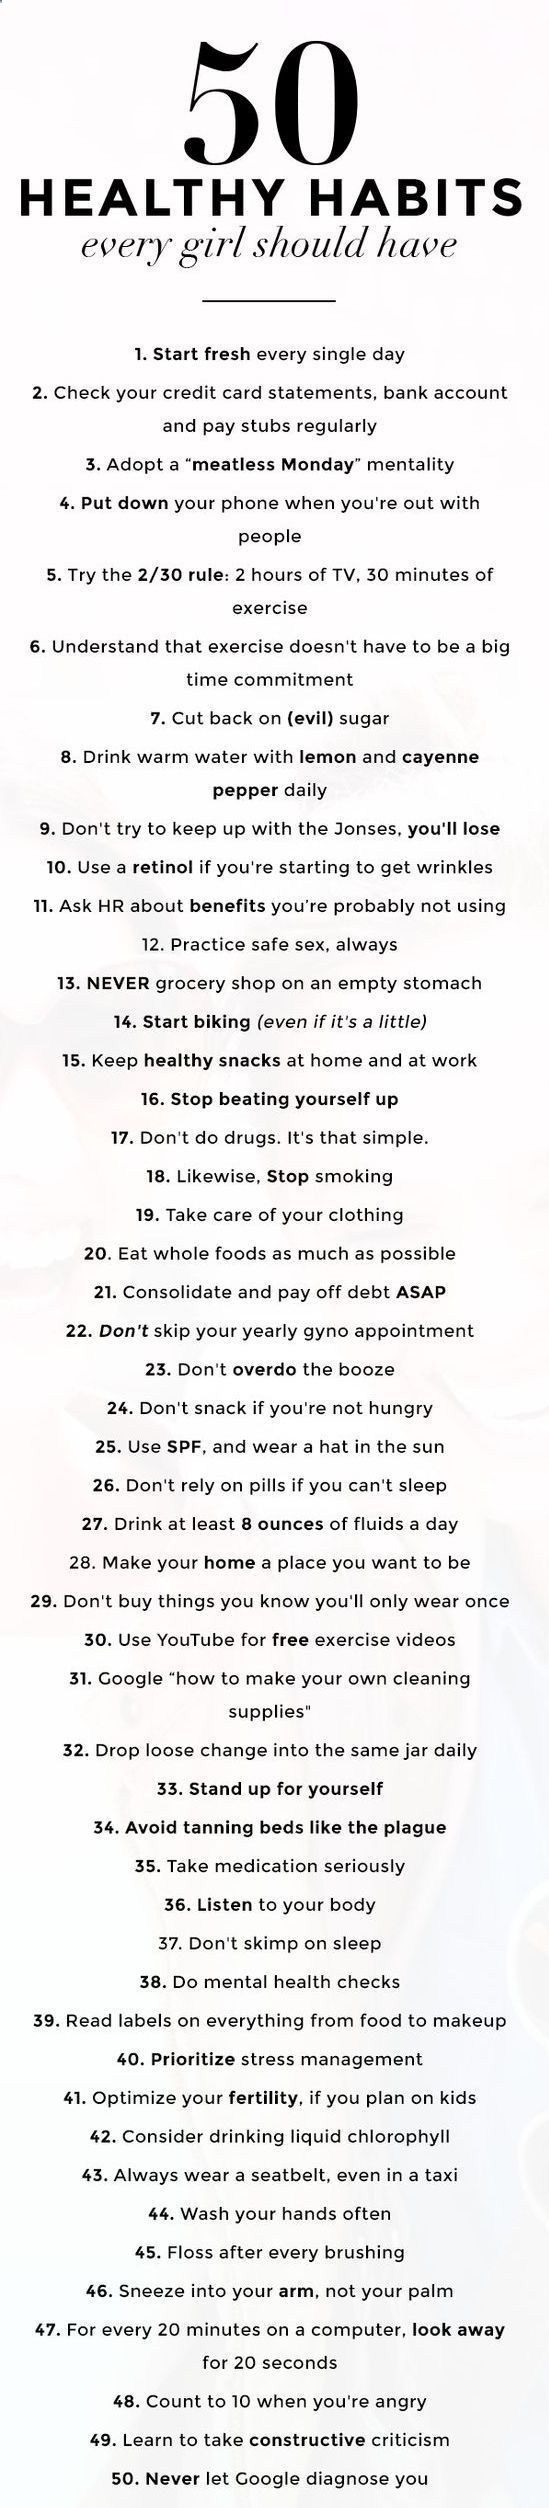 Things to live by. .